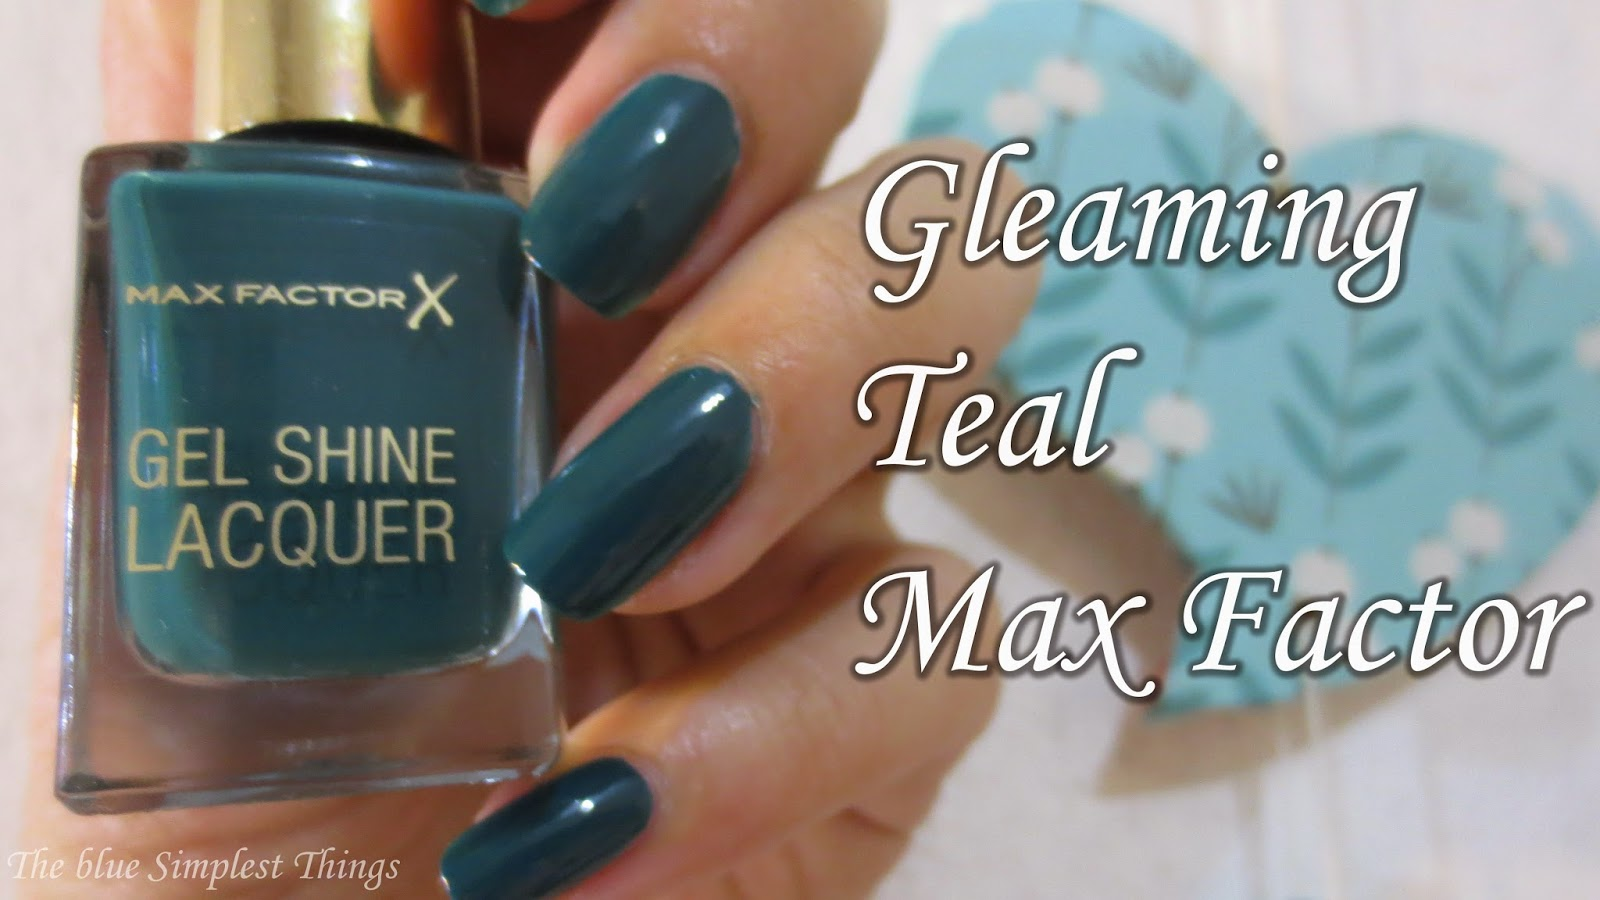 Blue Simplest by Ailen: Gleaming Teal Gel Shine Lacquer Max Factor